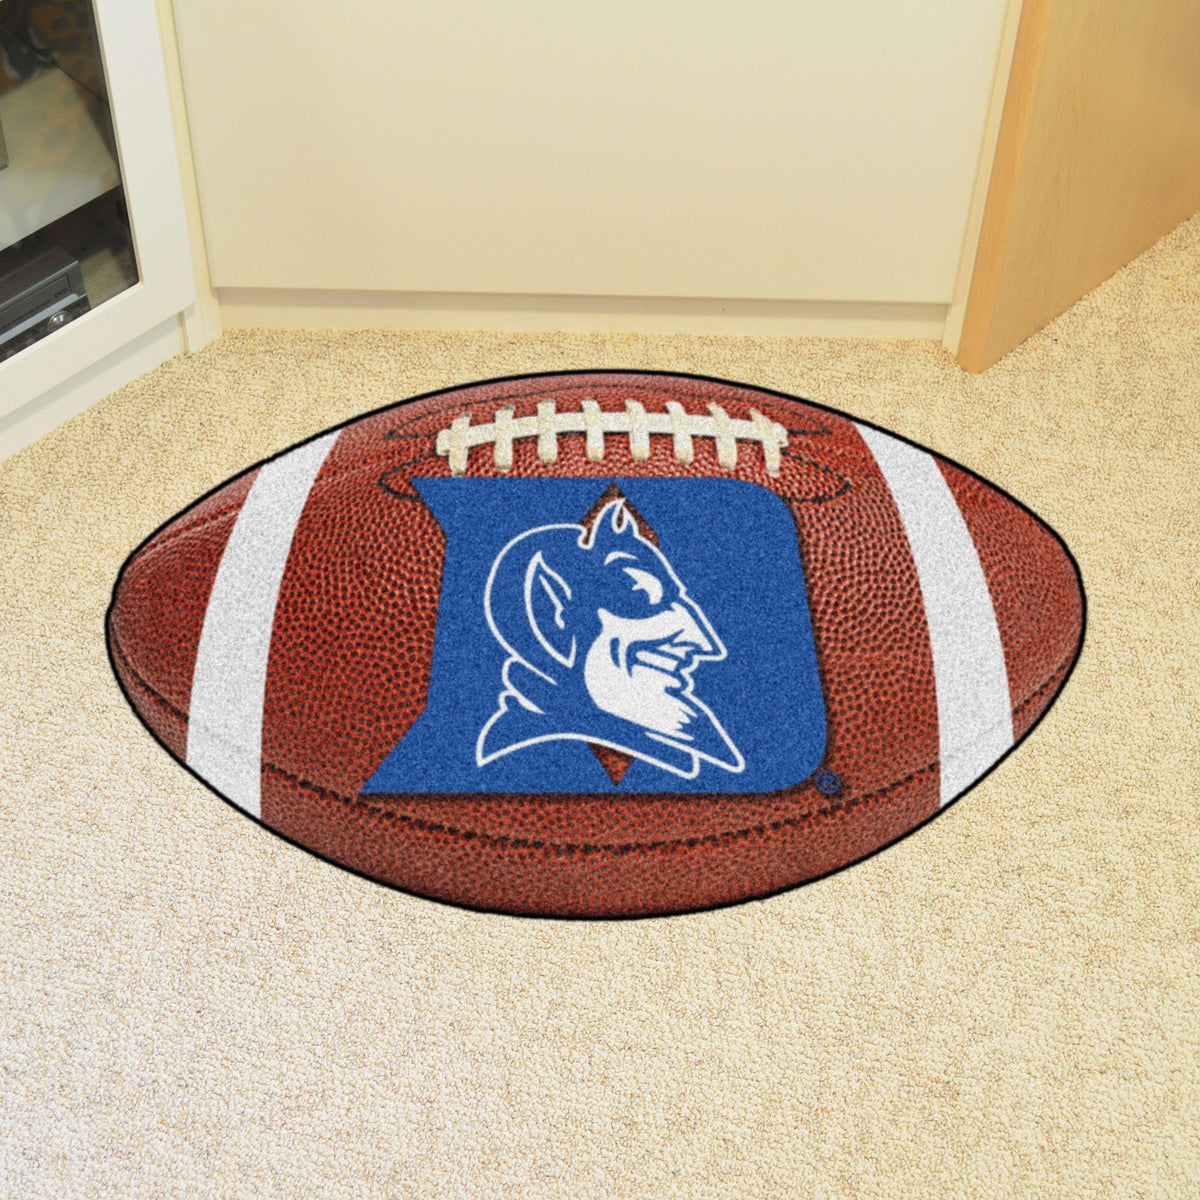 Collegiate - Football Mat: A - K Collegiate Mats, Rectangular Mats, Football Mat, Collegiate, Home Fan Mats Duke